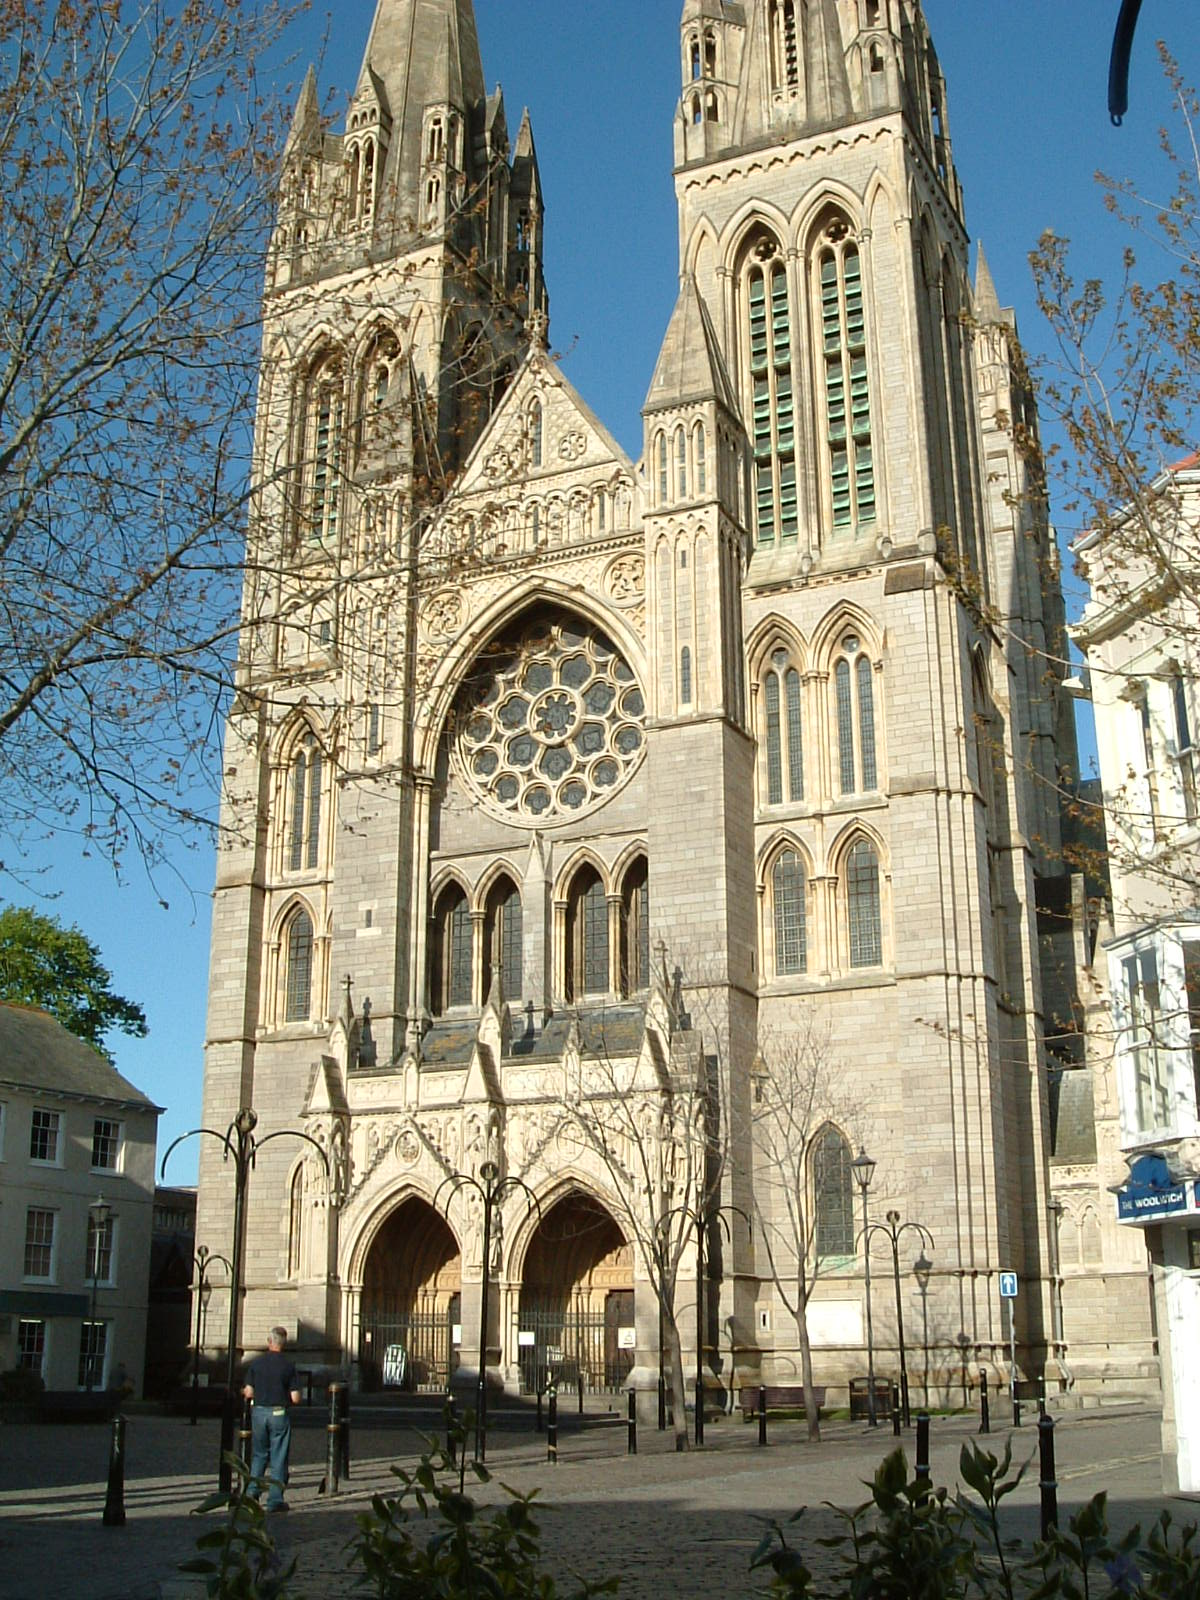 My Photo Wallpaper 3d Truro Cathedral A Picture From Pengoon Farm To Truro